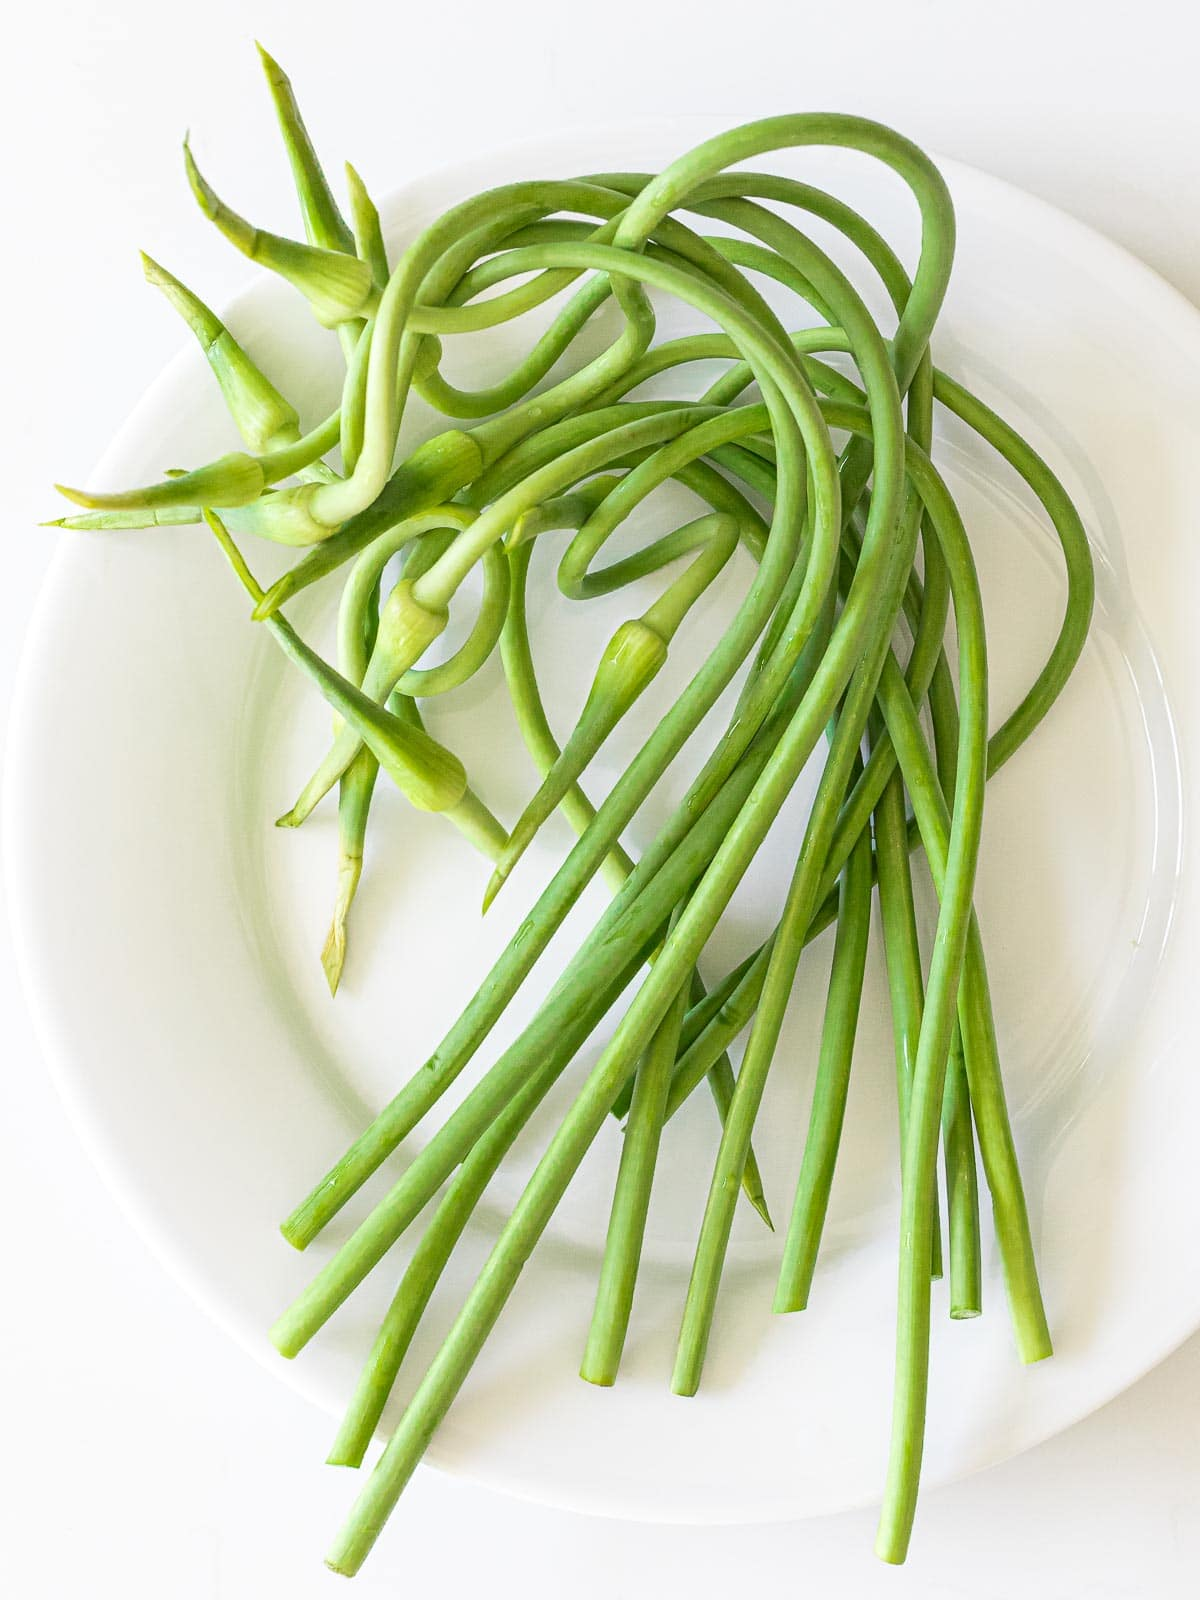 garlic scapes on a white plate